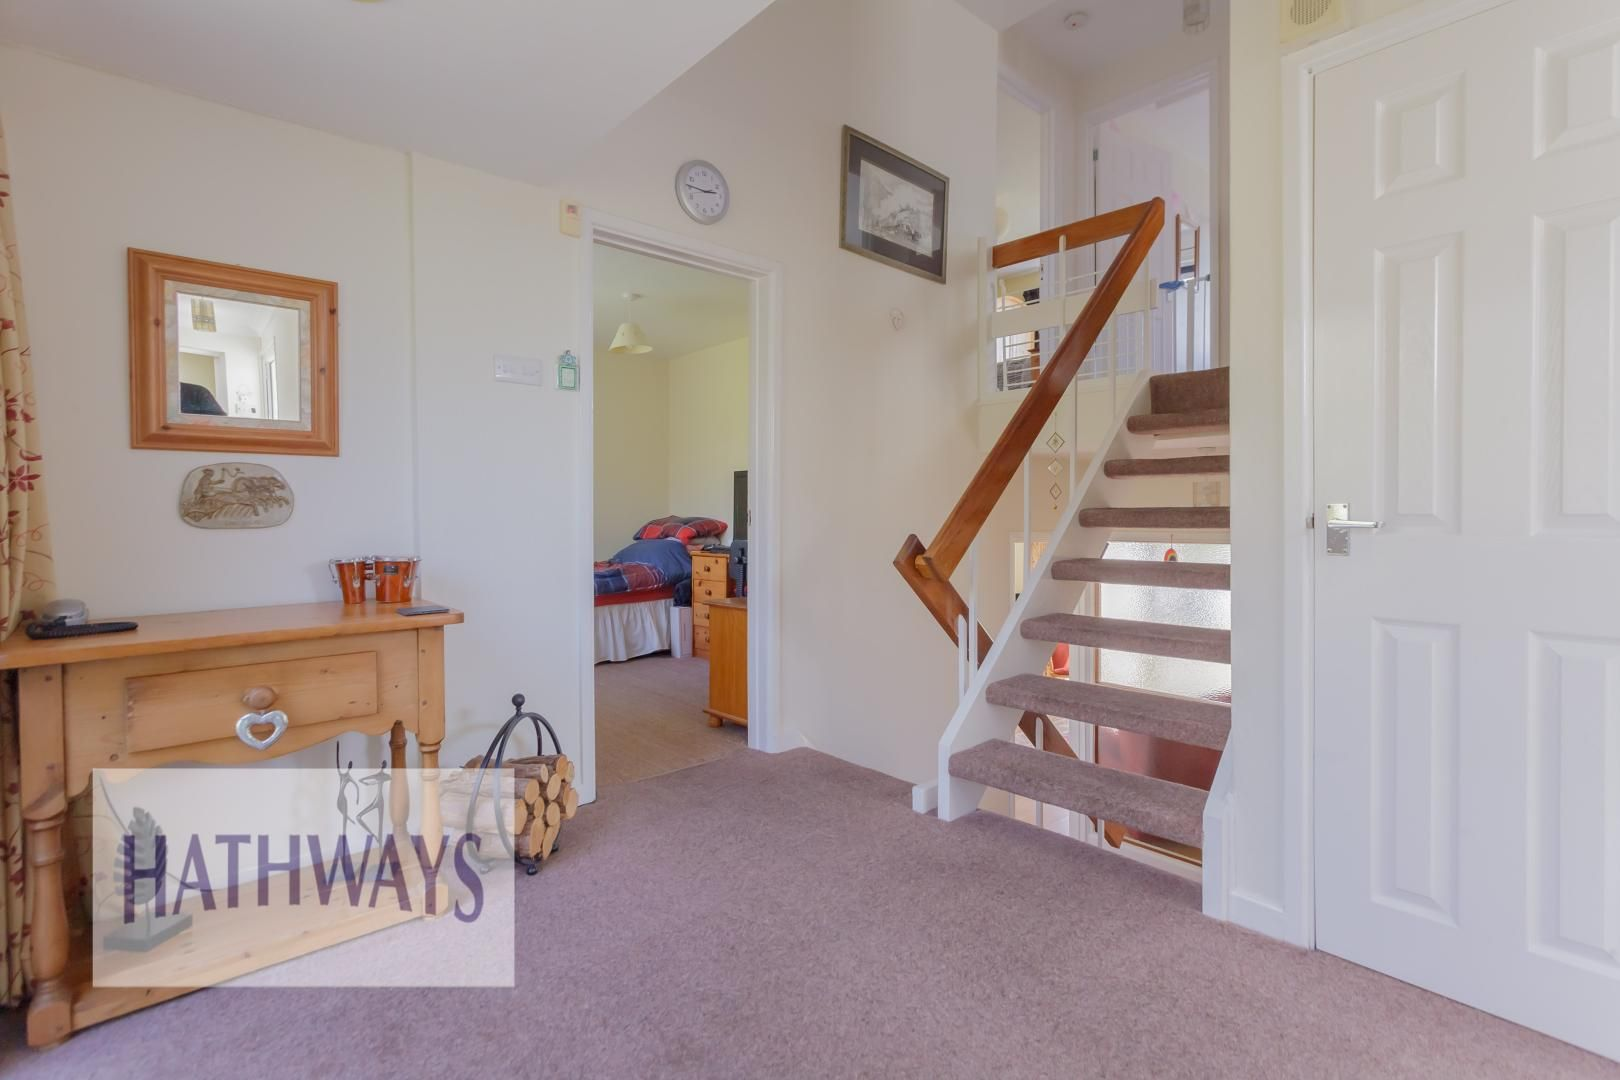 4 bed house for sale in Greenfield 5